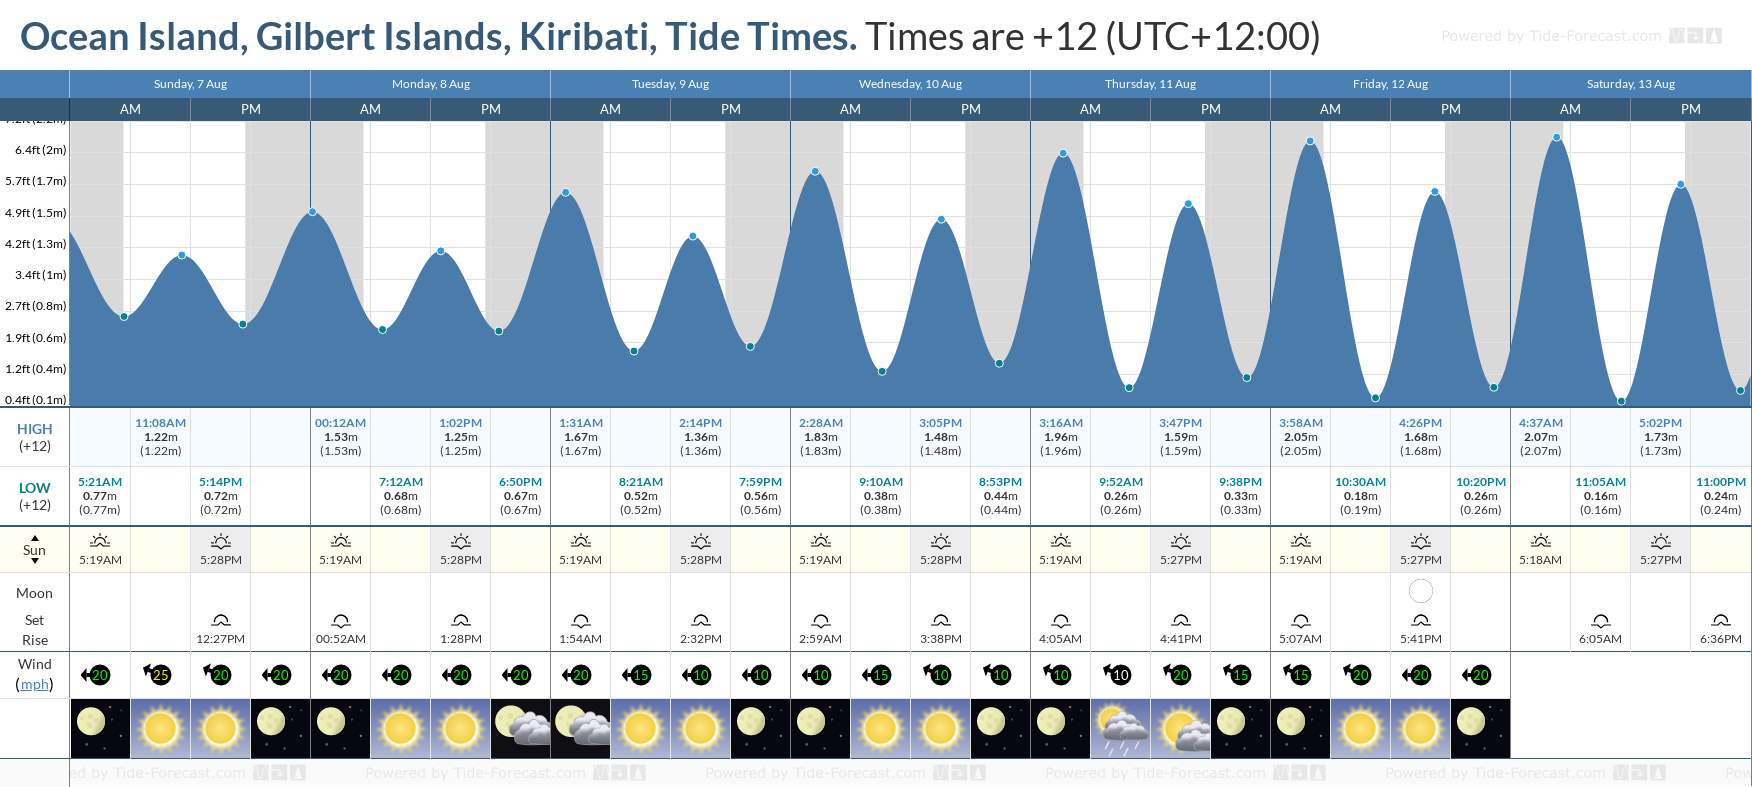 Ocean Island, Gilbert Islands, Kiribati Tide Chart including high and low tide tide times for the next 7 days